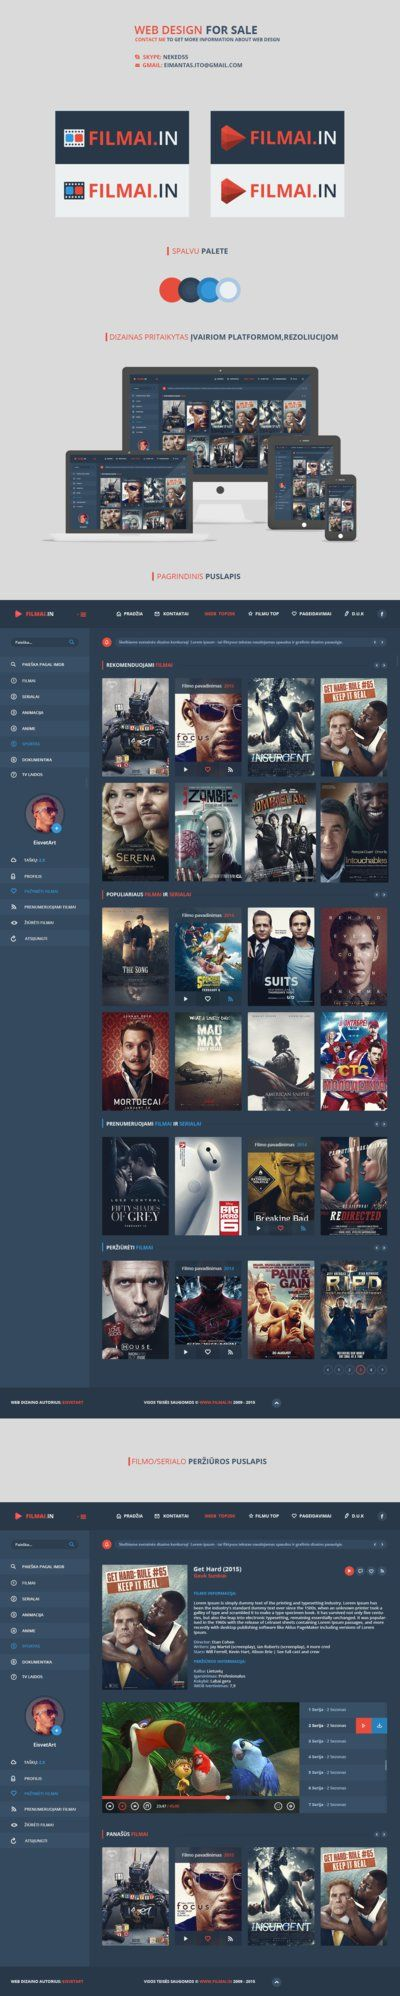 Movie / Films Online [ Web design ] - FOR SALE by iEimiz on DeviantArt